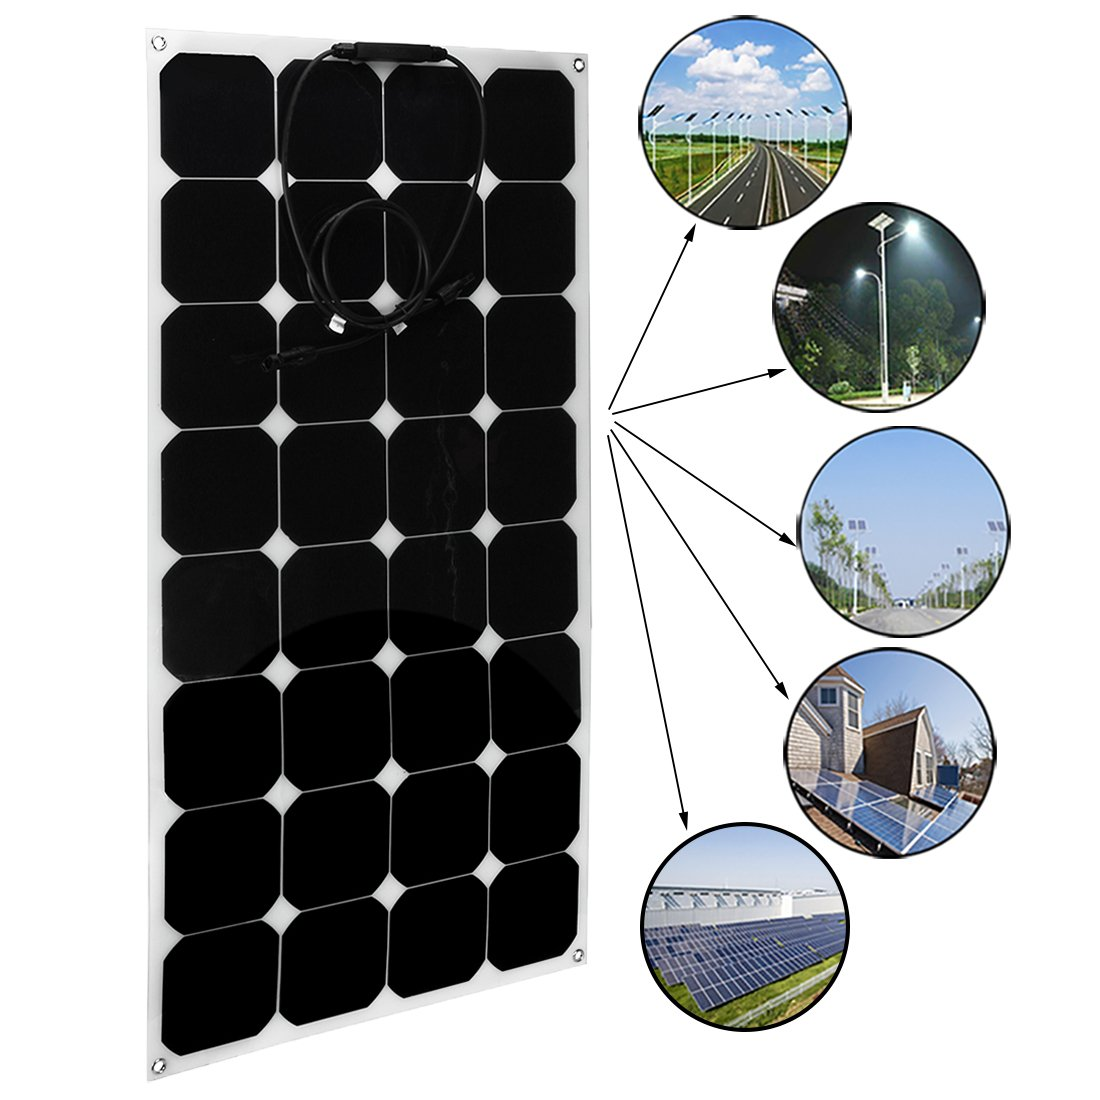 uxcell 2pcs 100W 18V 12V Solar Panel Charger Solar Cell Ultra Thin Flexible with MC4 Connector Charging for RV Boat Cabin Tent Car by BU LU SHI (Image #3)